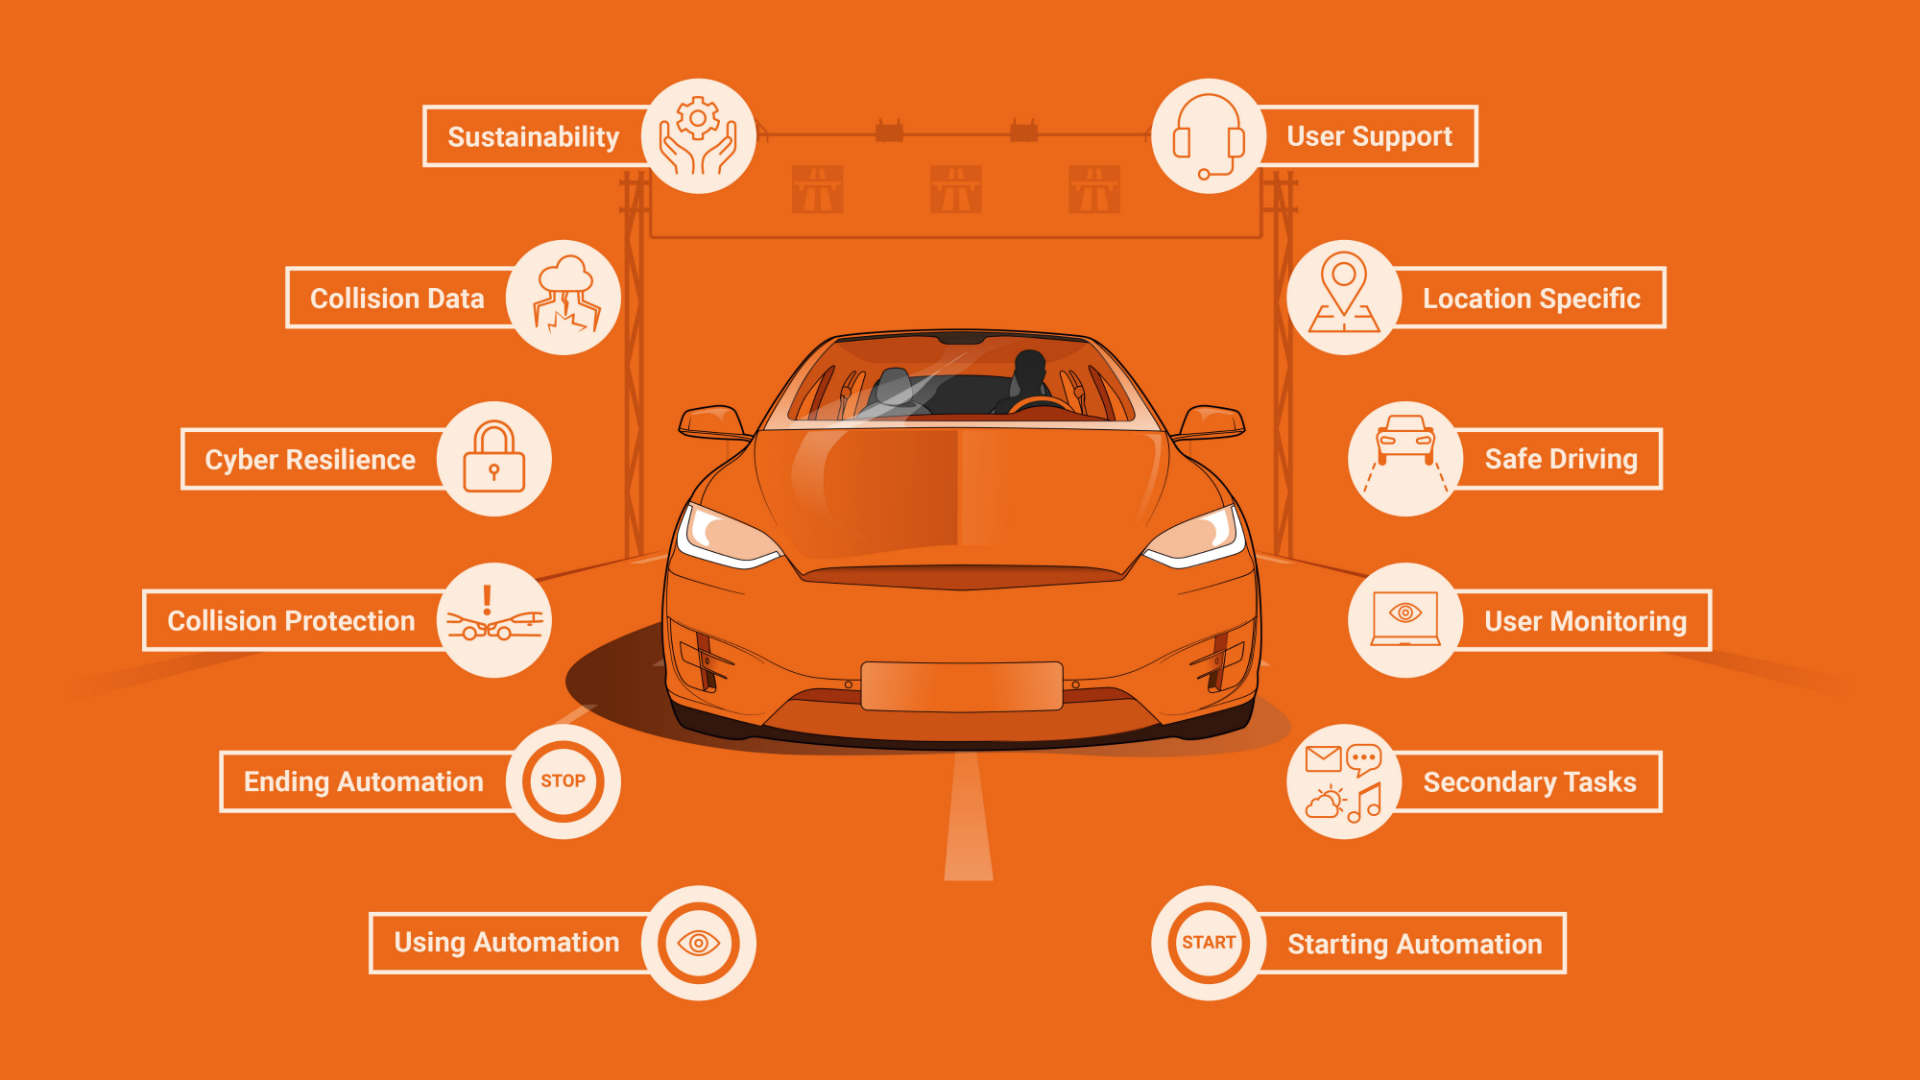 12 steps to automated driving